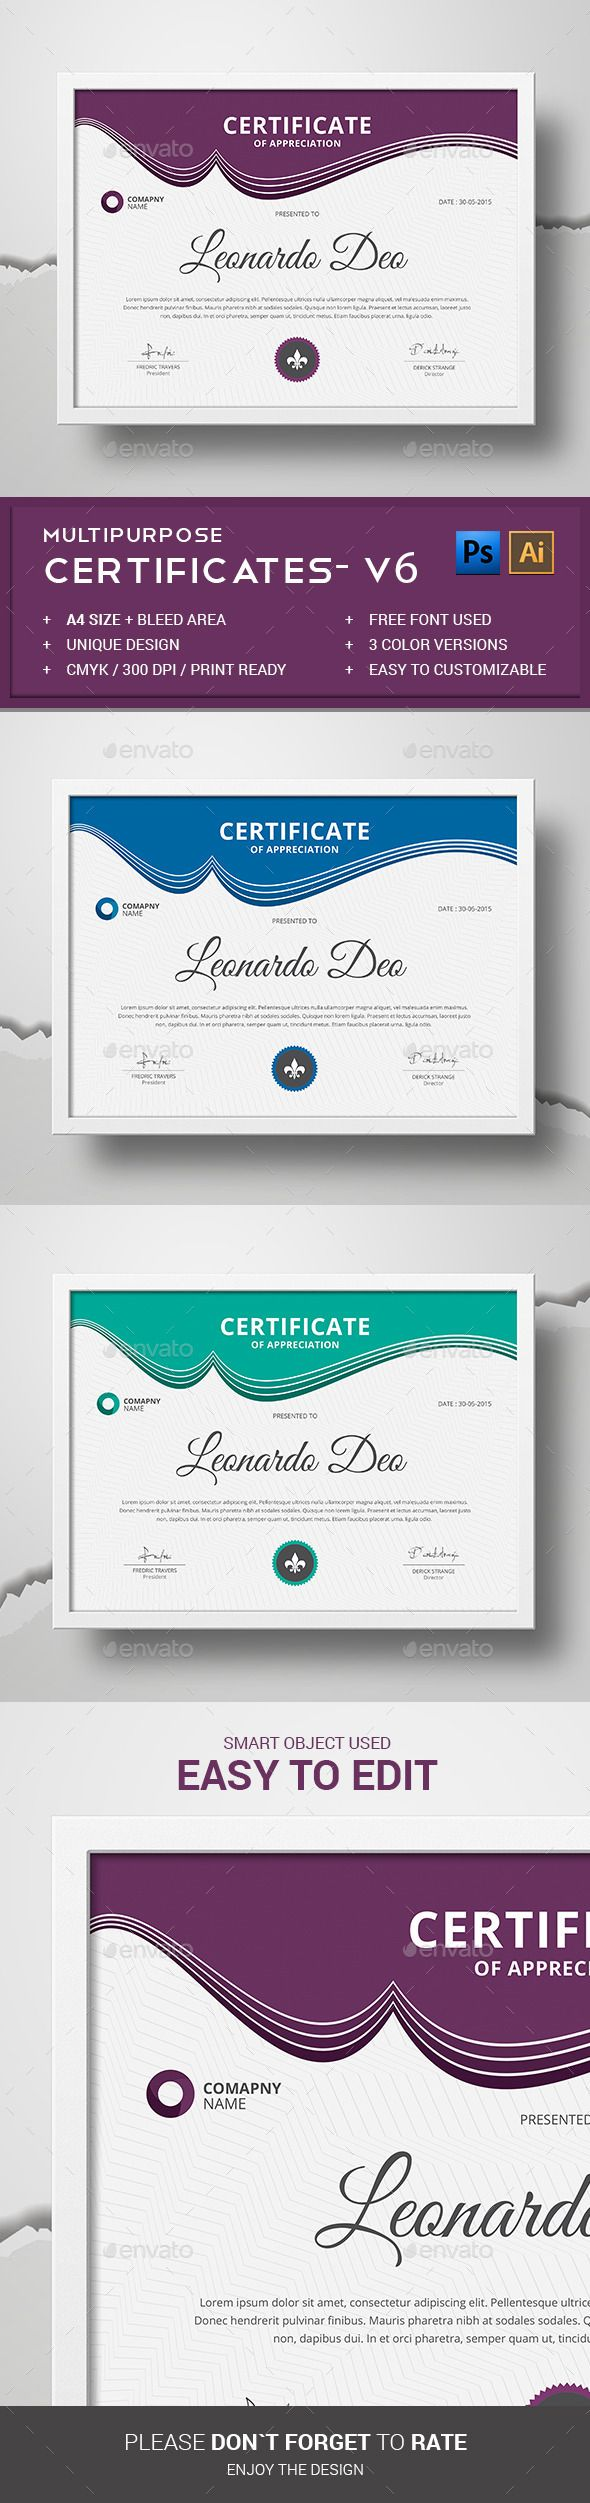 34 best certificate templates psd images on pinterest font logo certificate yelopaper Image collections